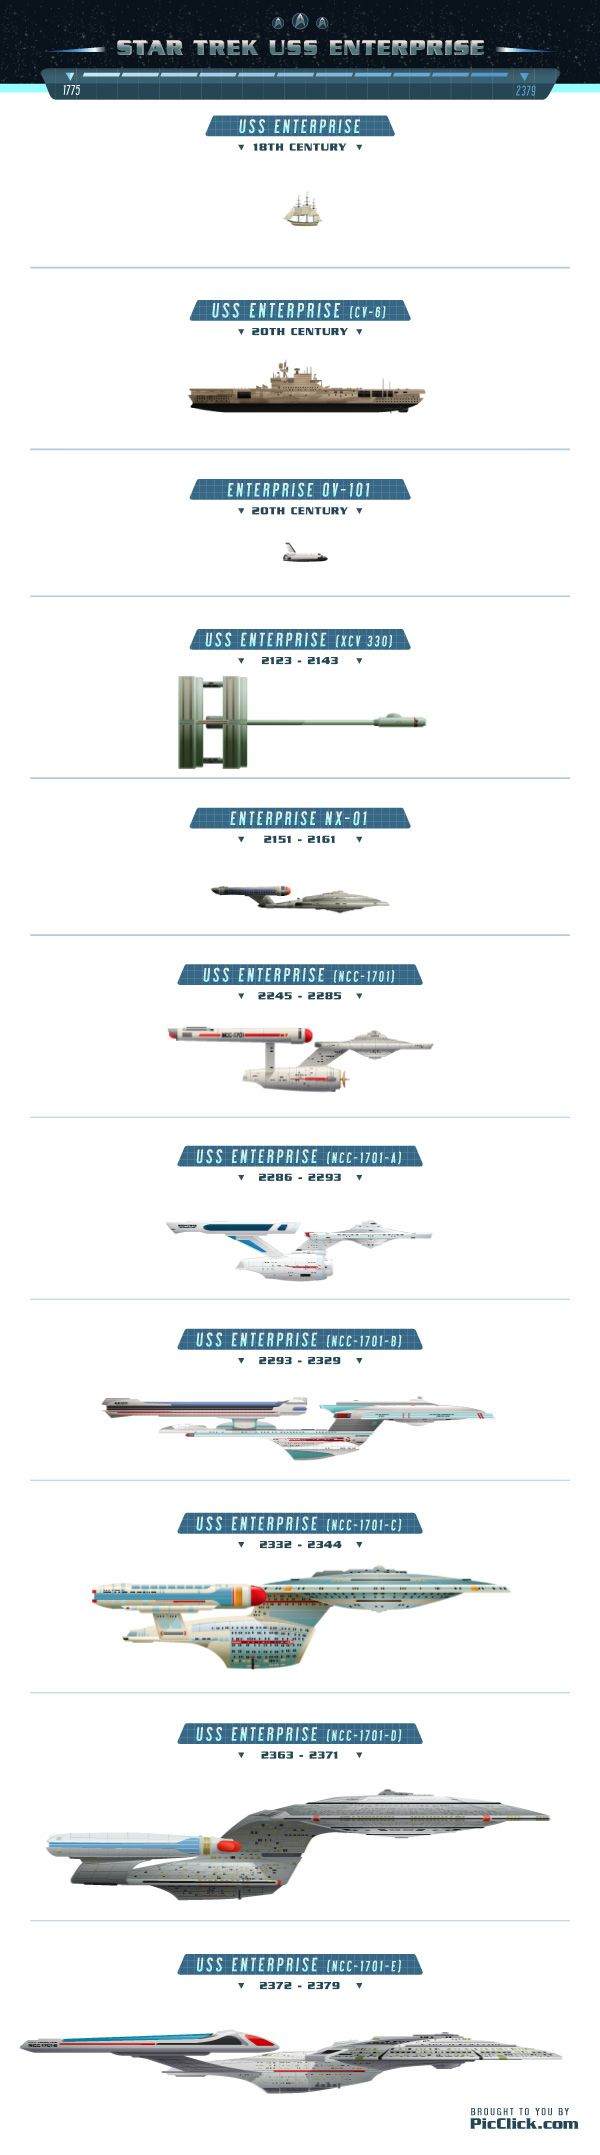 Star Trek USS Enterprise Morphed